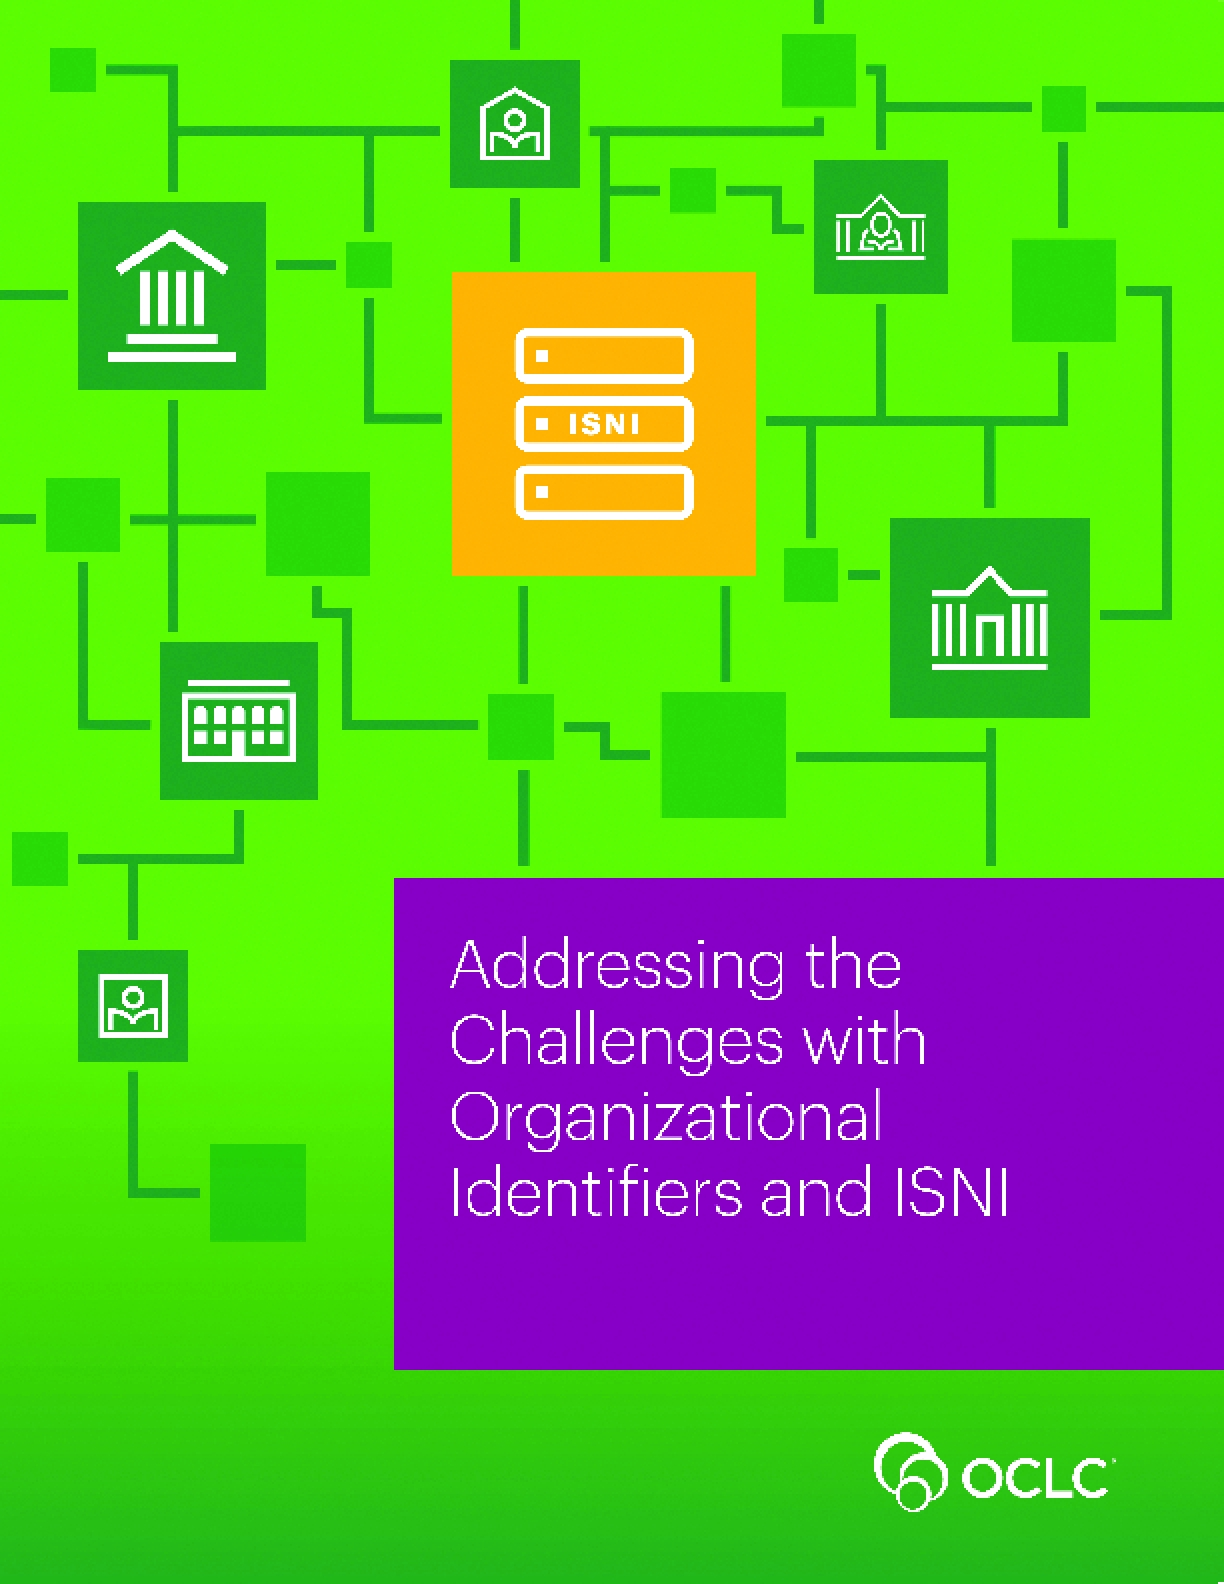 Addressing the Challenges with Organizational Identifiers and ISNI